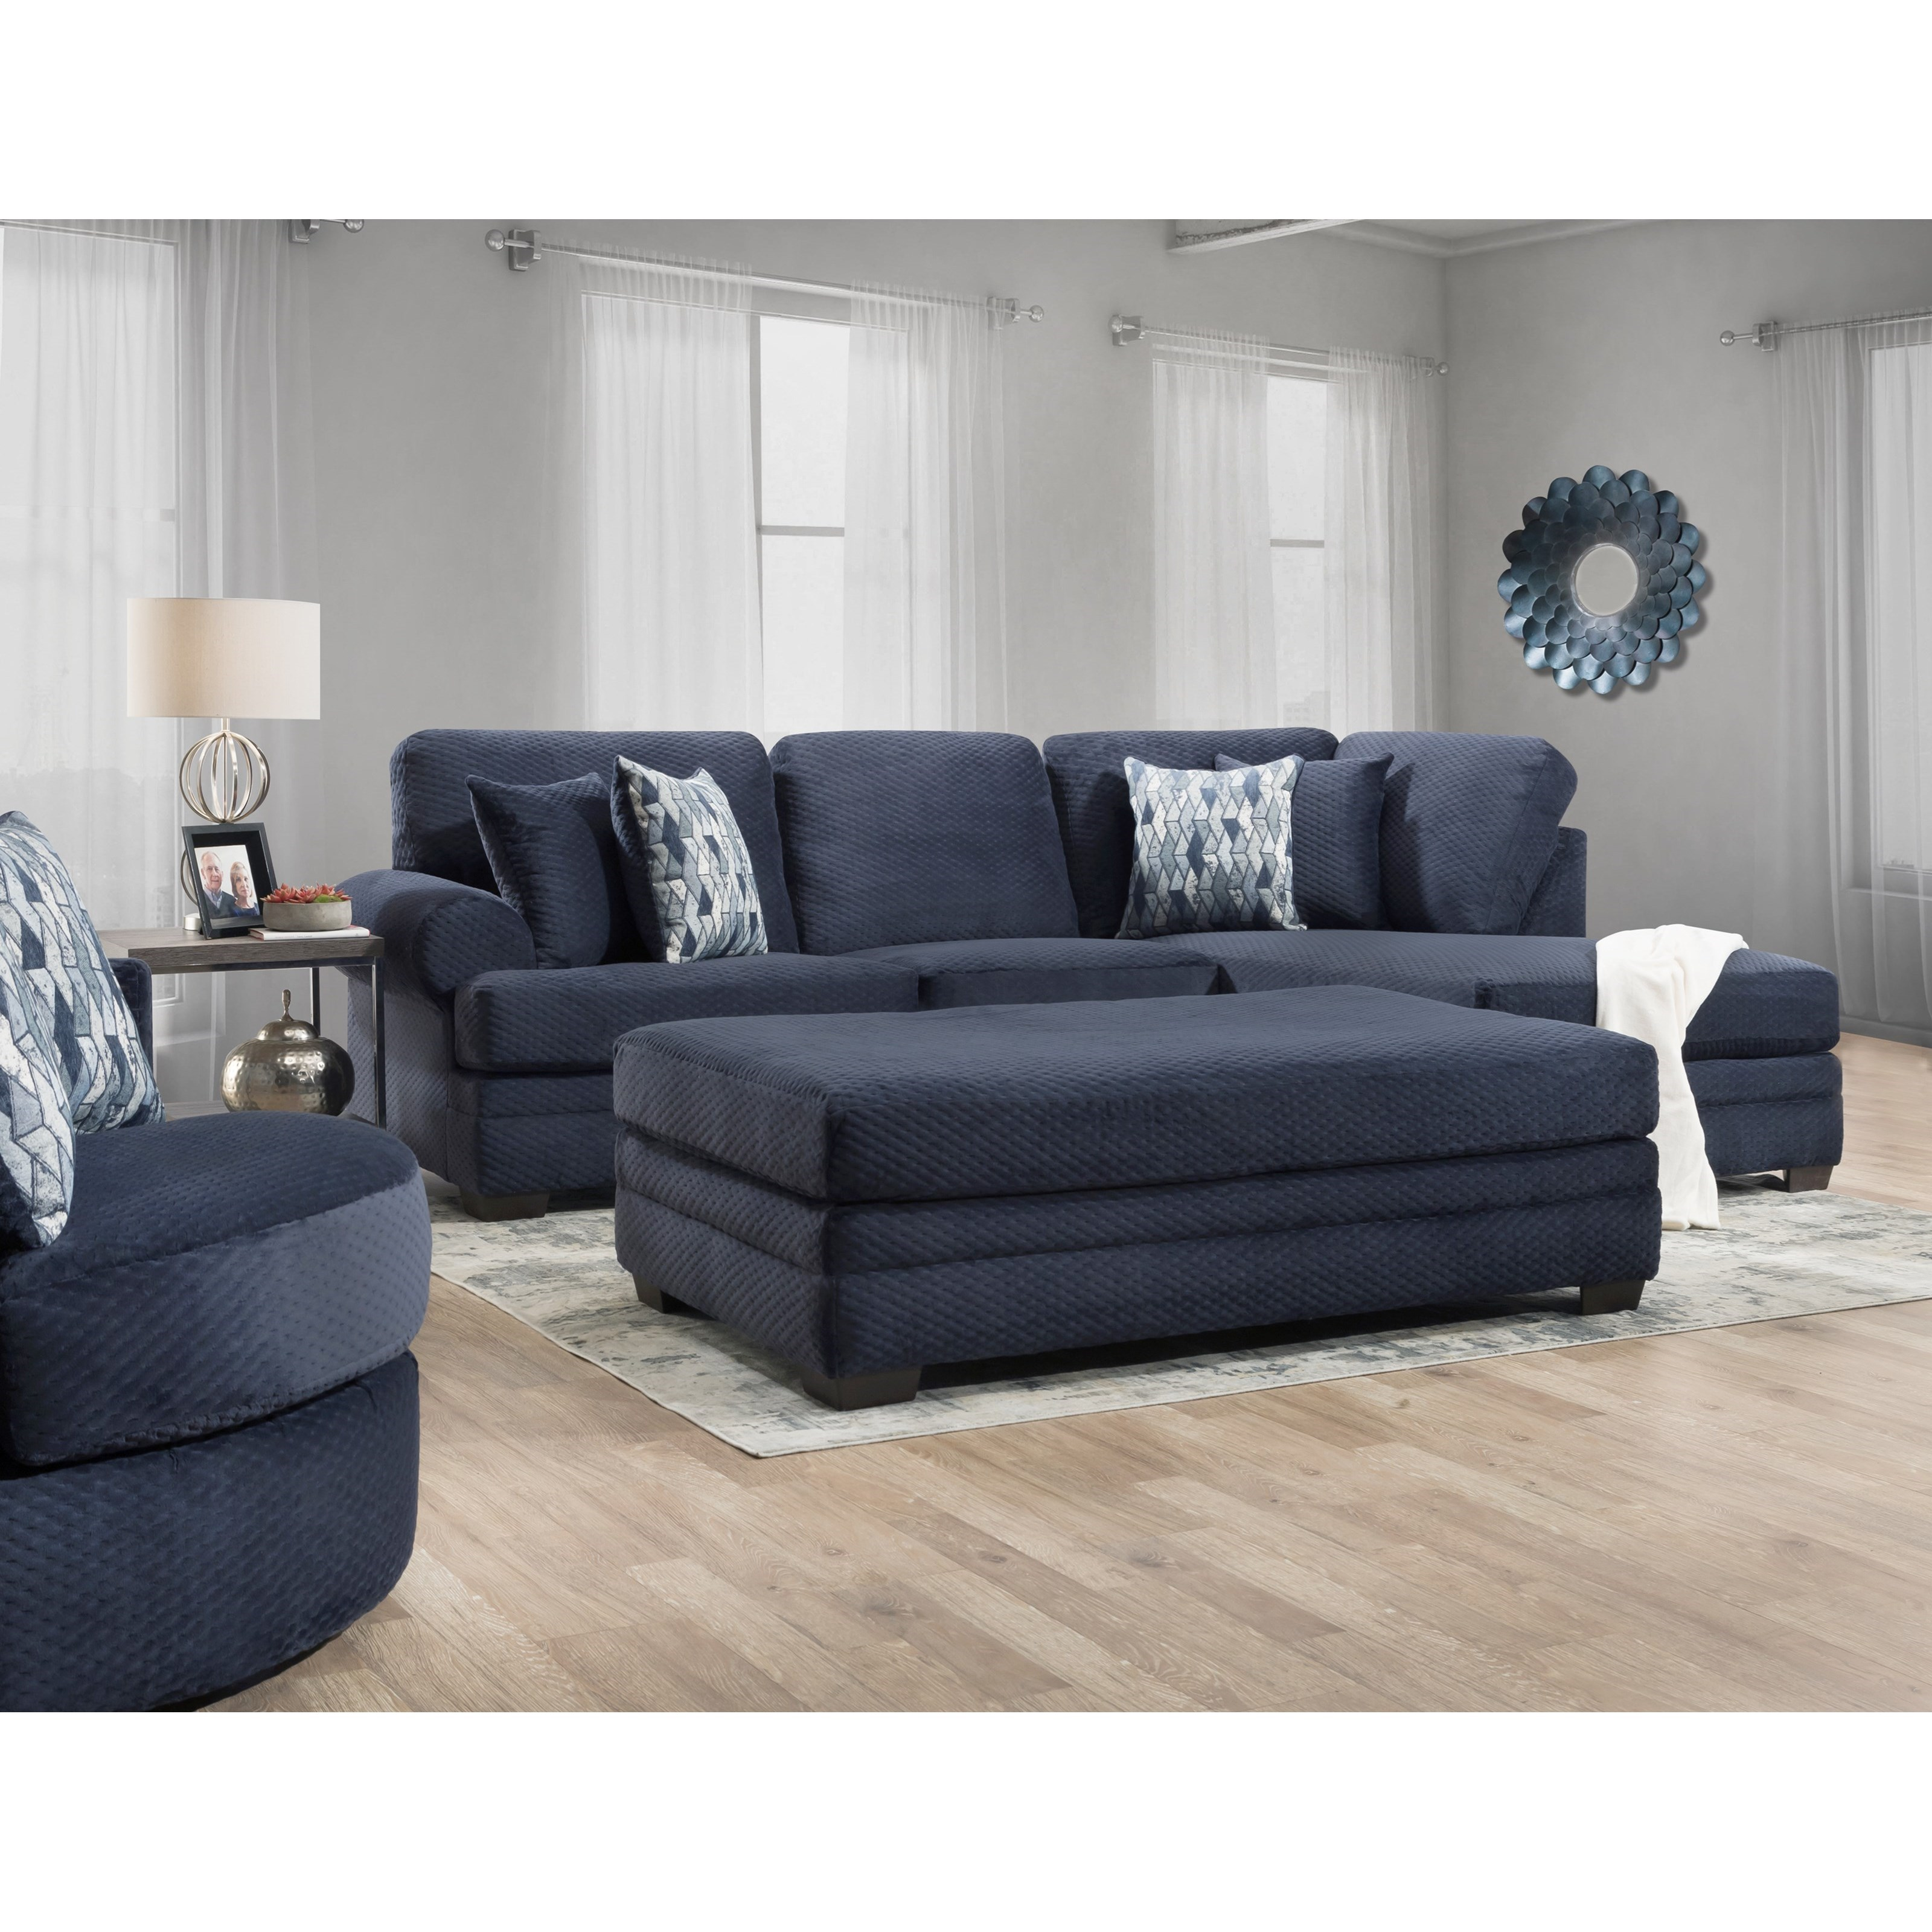 7000 Three Seat Sectional with Rounded Arms by Peak Living at Prime Brothers Furniture